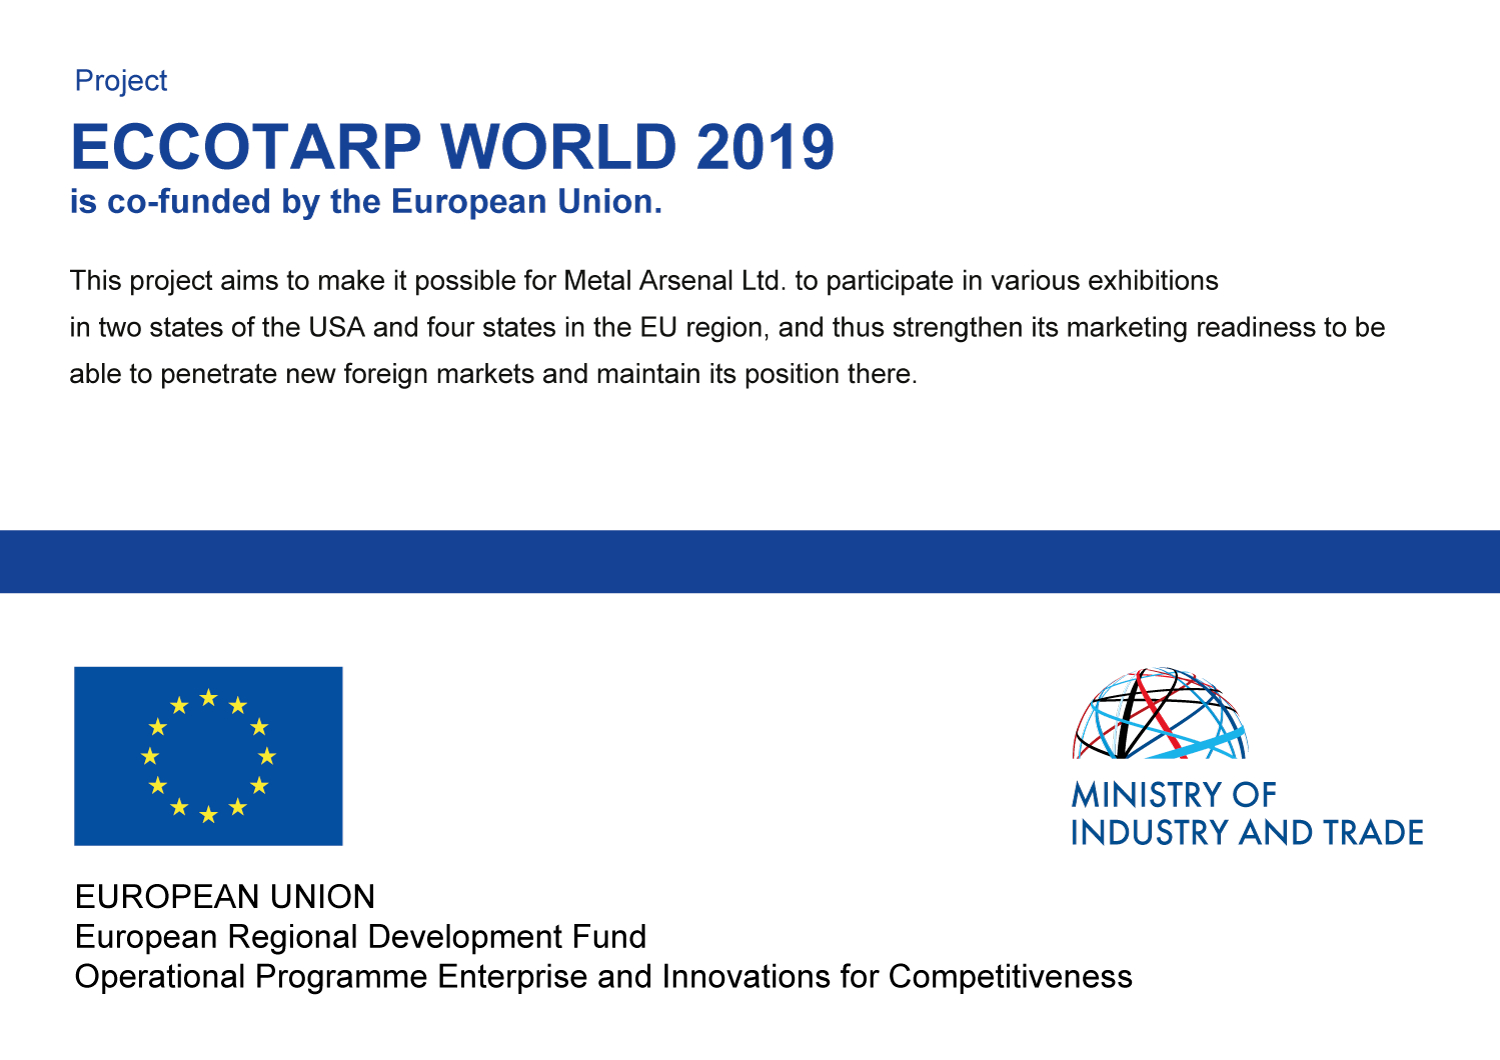 ECCOTARP WORLD 2019 is co-funded by the European Union